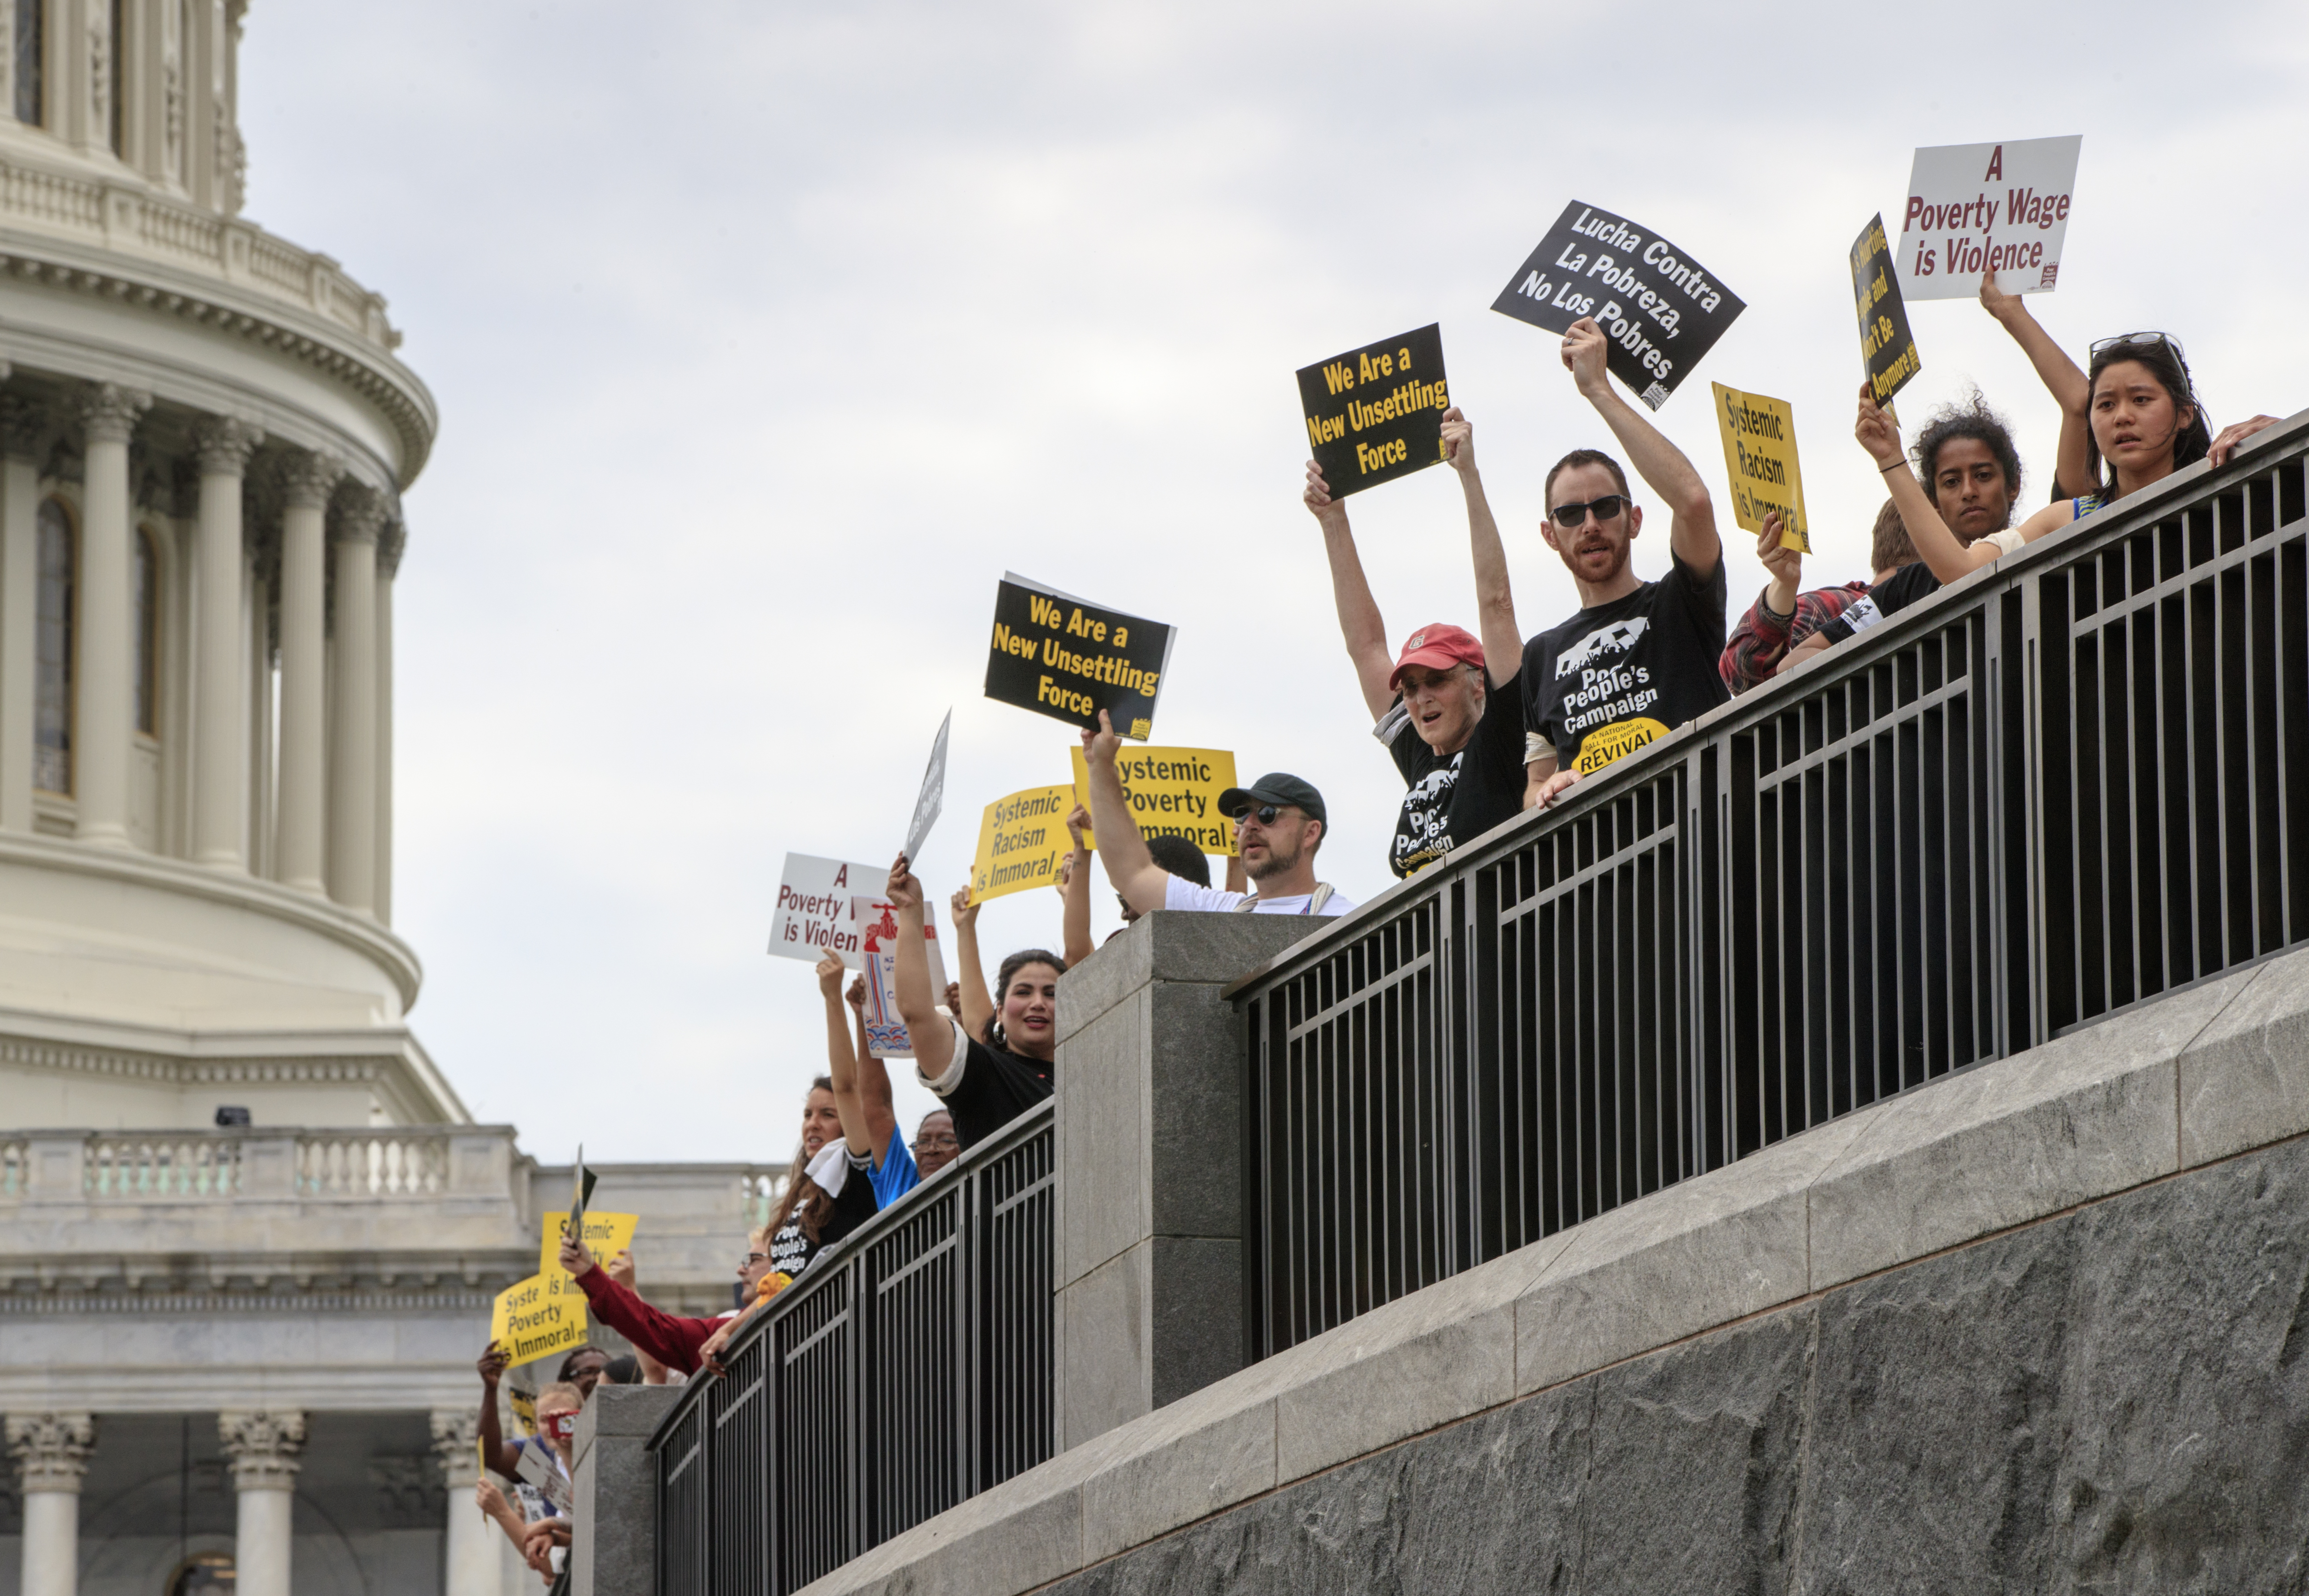 Demonstrators with the Poor People's Campaign await processing by U.S. Capitol Police after being peacefully arrested in 2018.